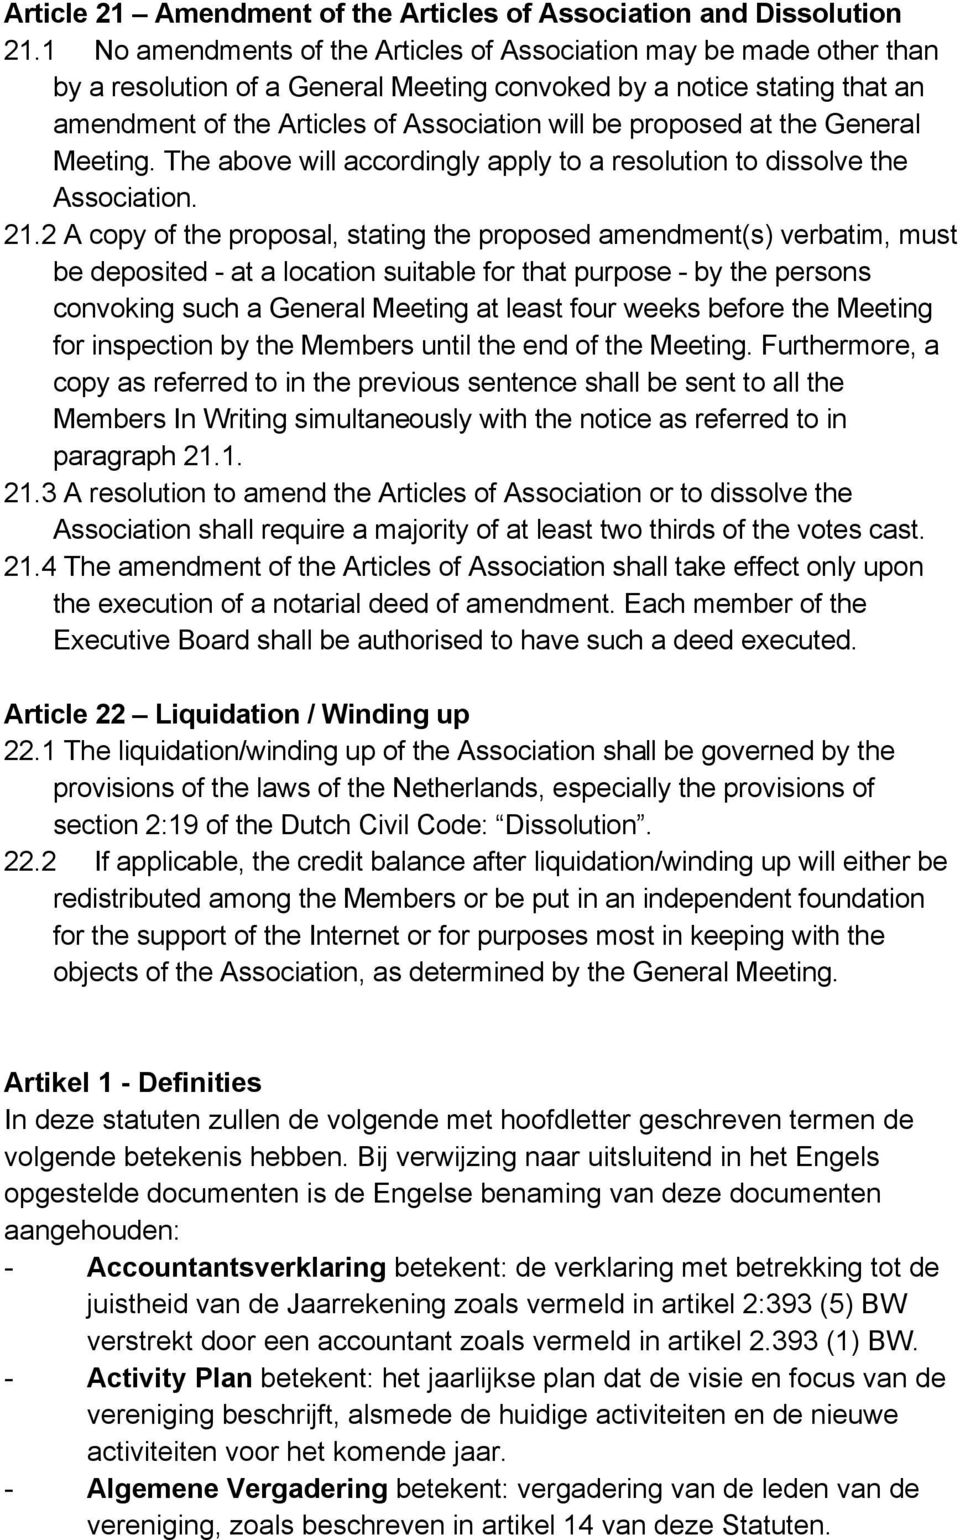 proposed at the General Meeting. The above will accordingly apply to a resolution to dissolve the Association. 21.